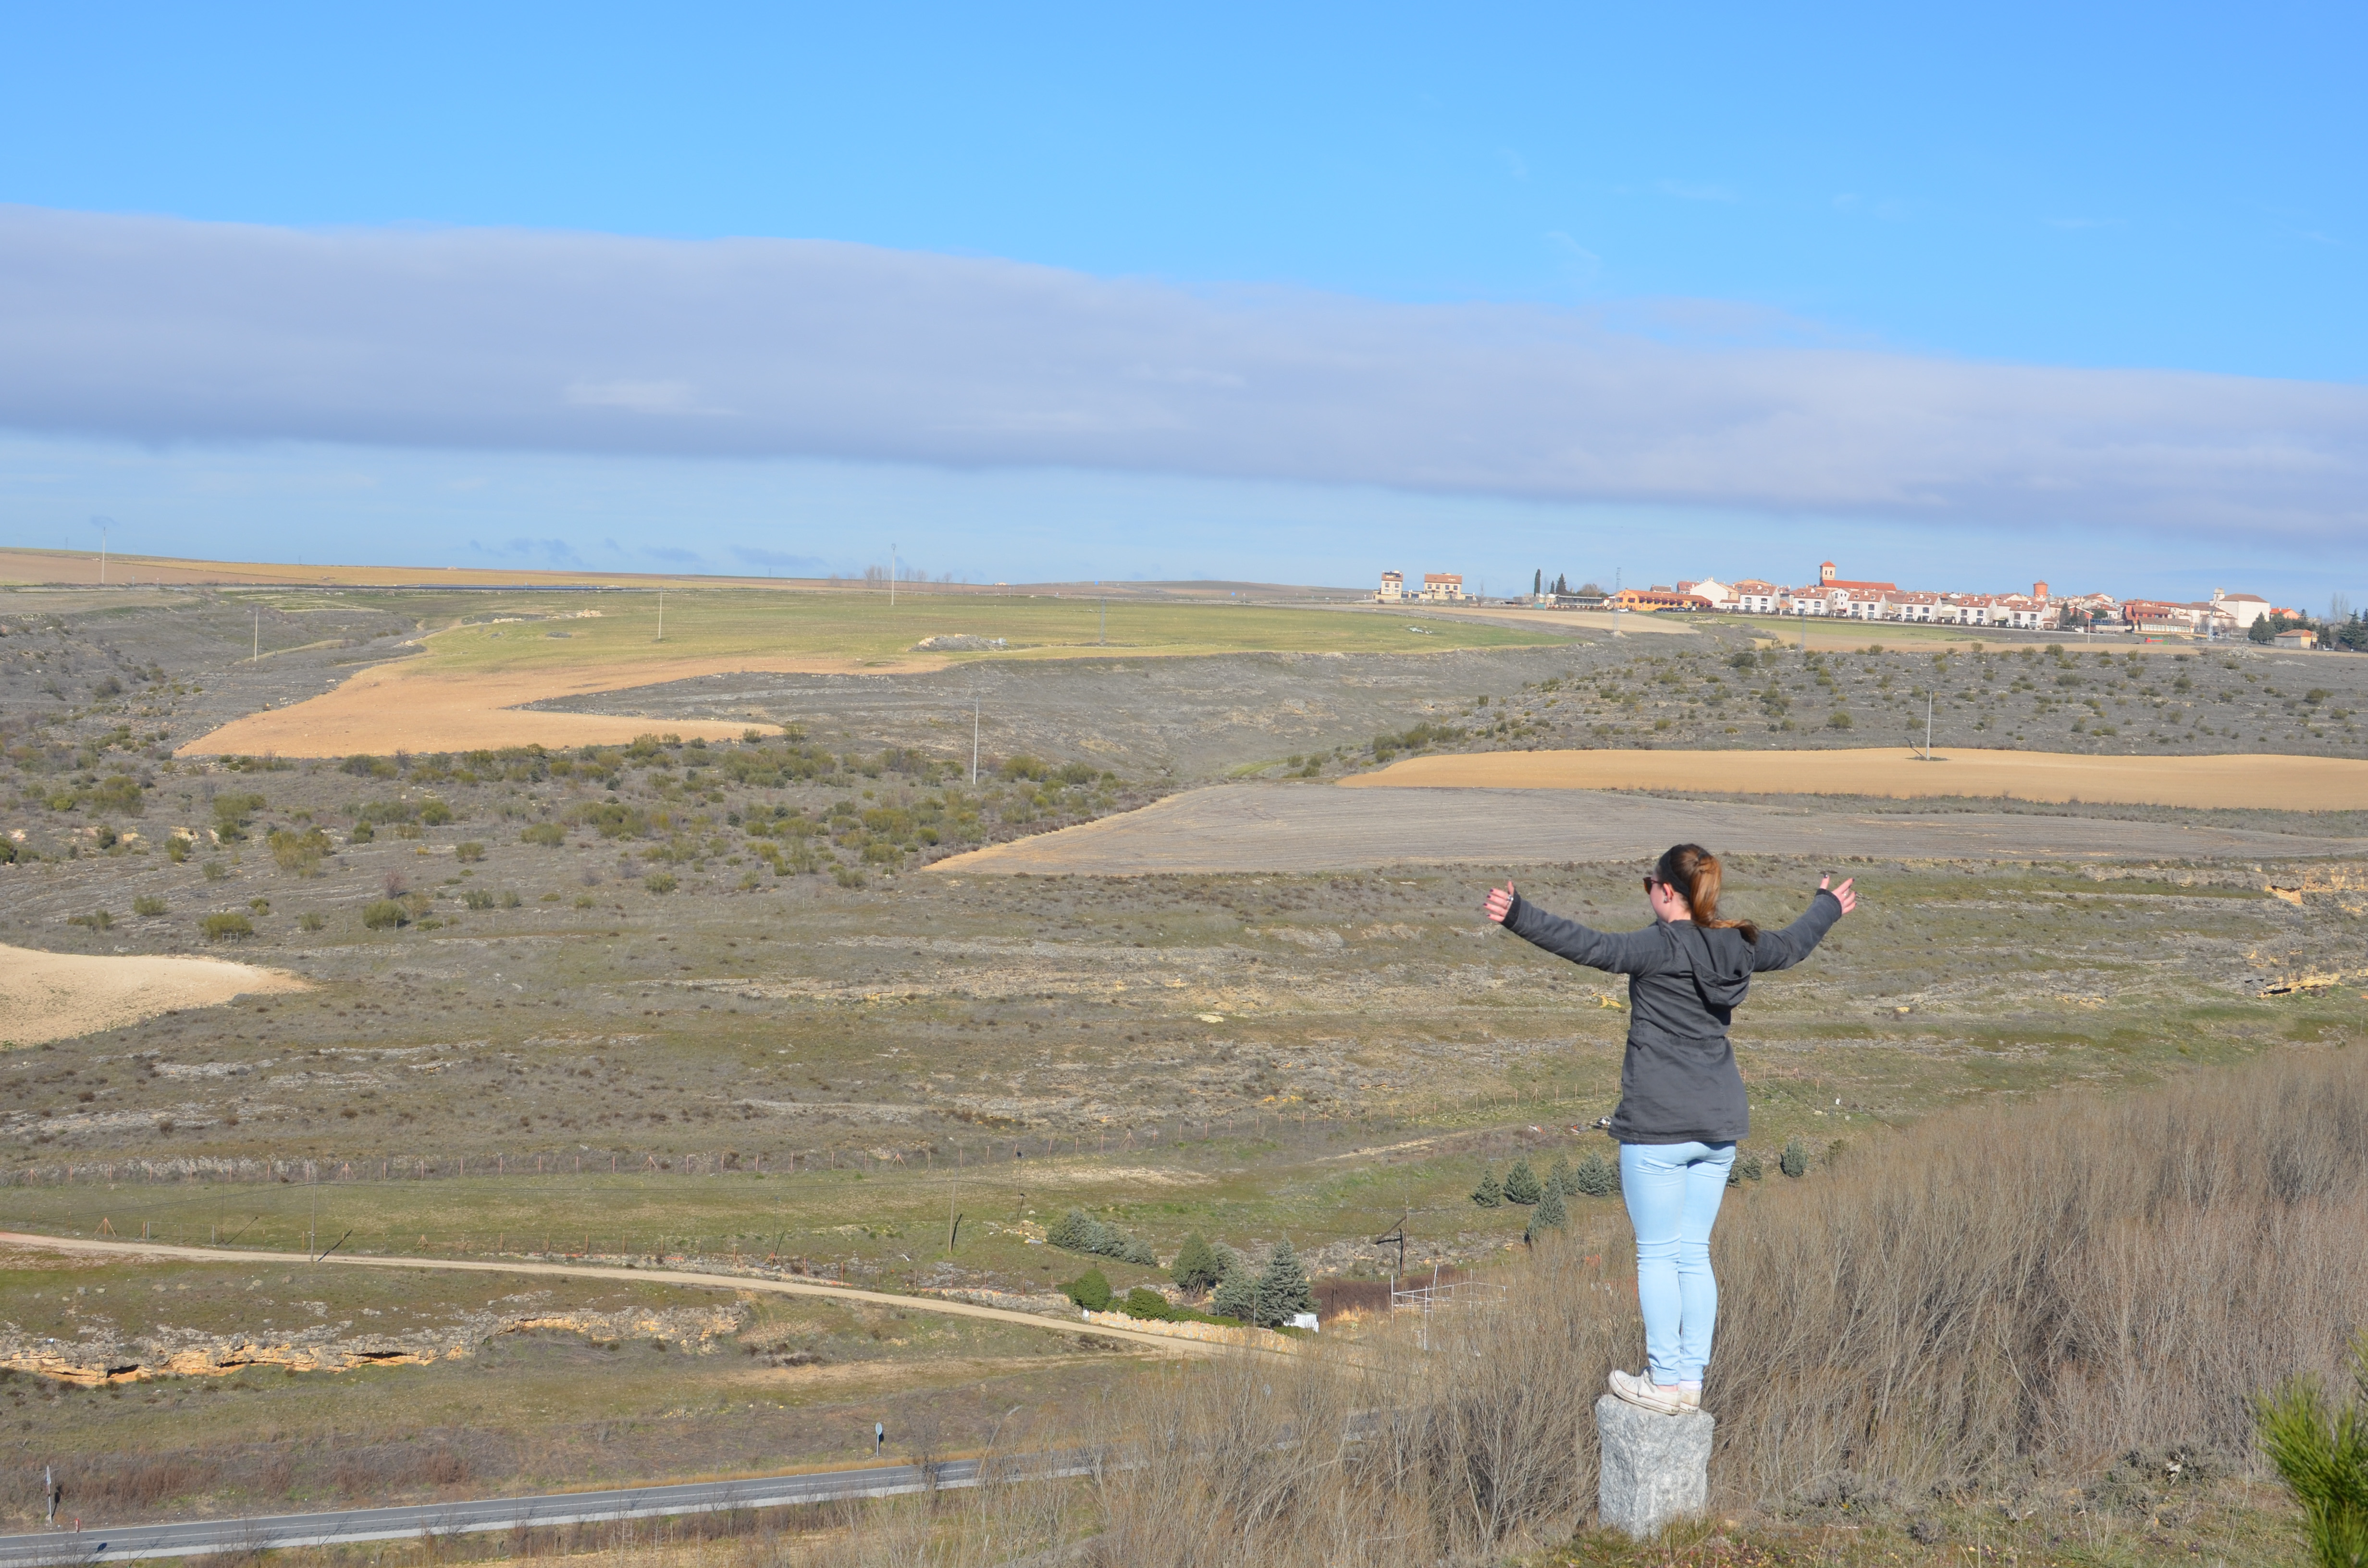 Proctor en Segovia gazes out at the meseta